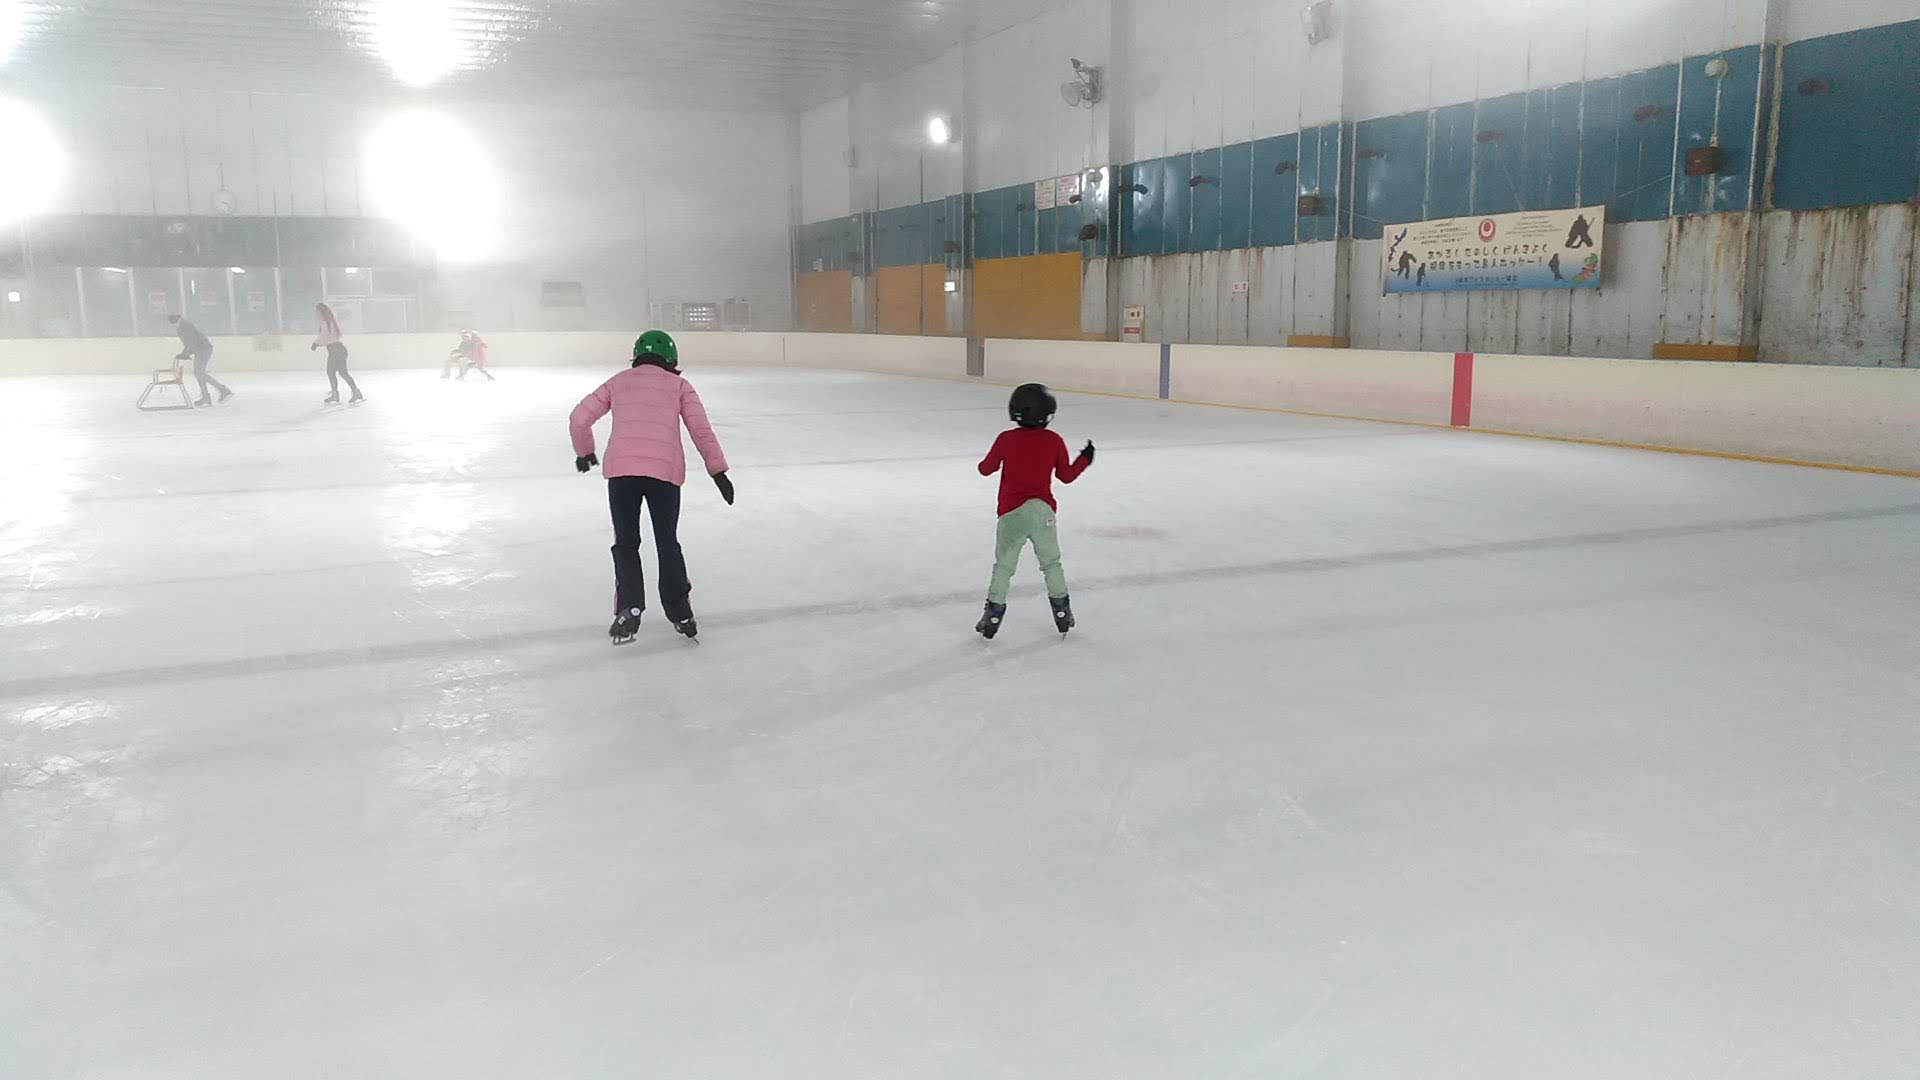 Even children who had been struggling with ice skating in the first place could now slip slightly without handrails after about two hours